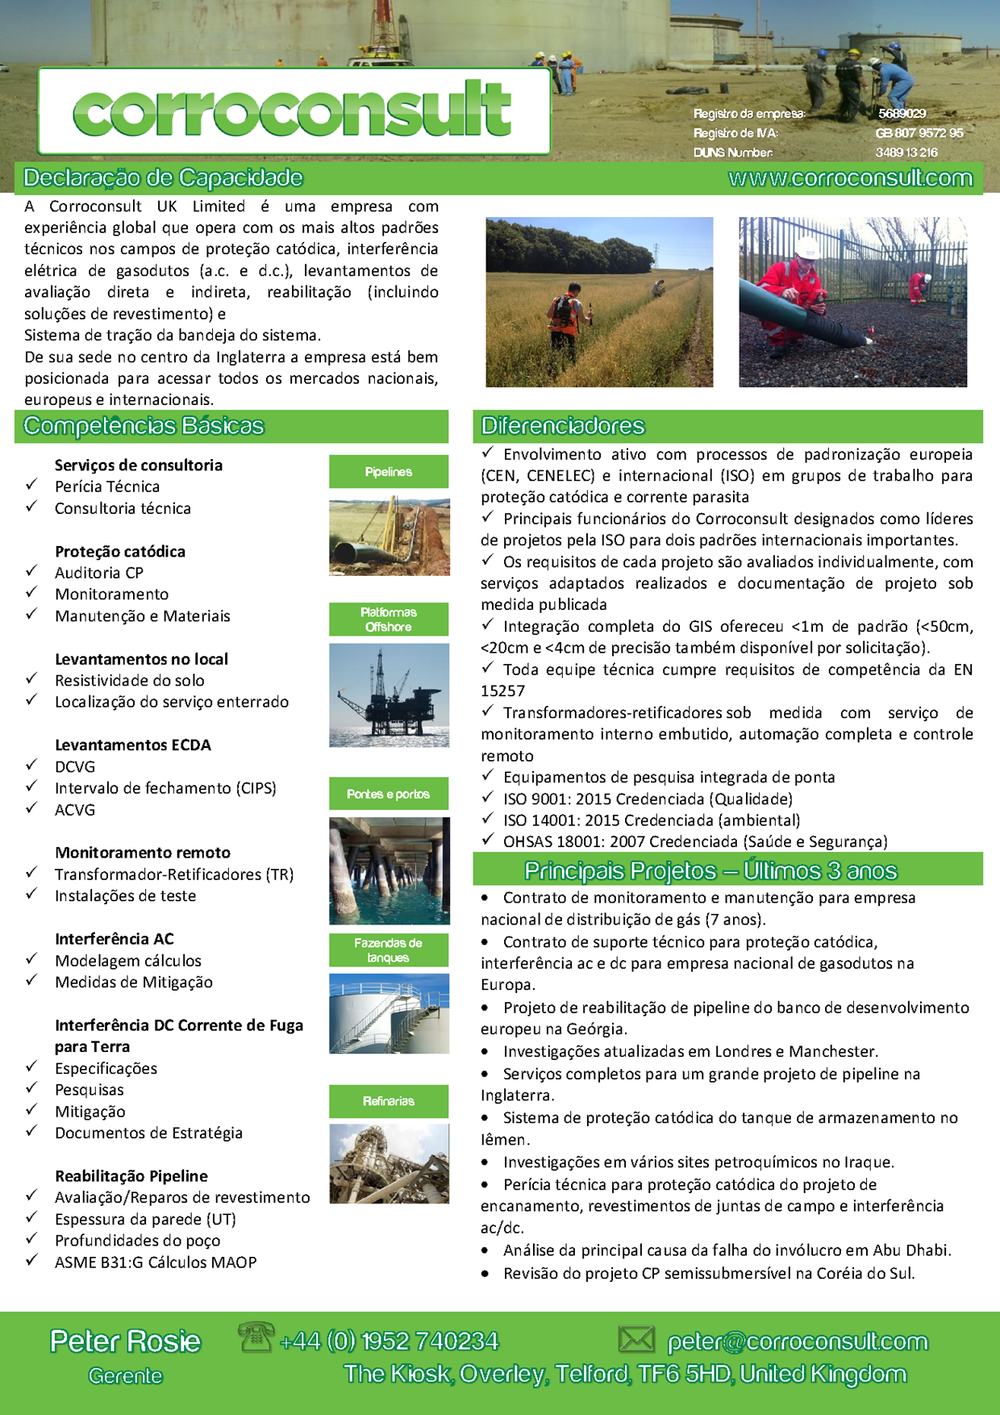 Corroconsult UK Limited - Capability Statement [Portuguese] resized.png